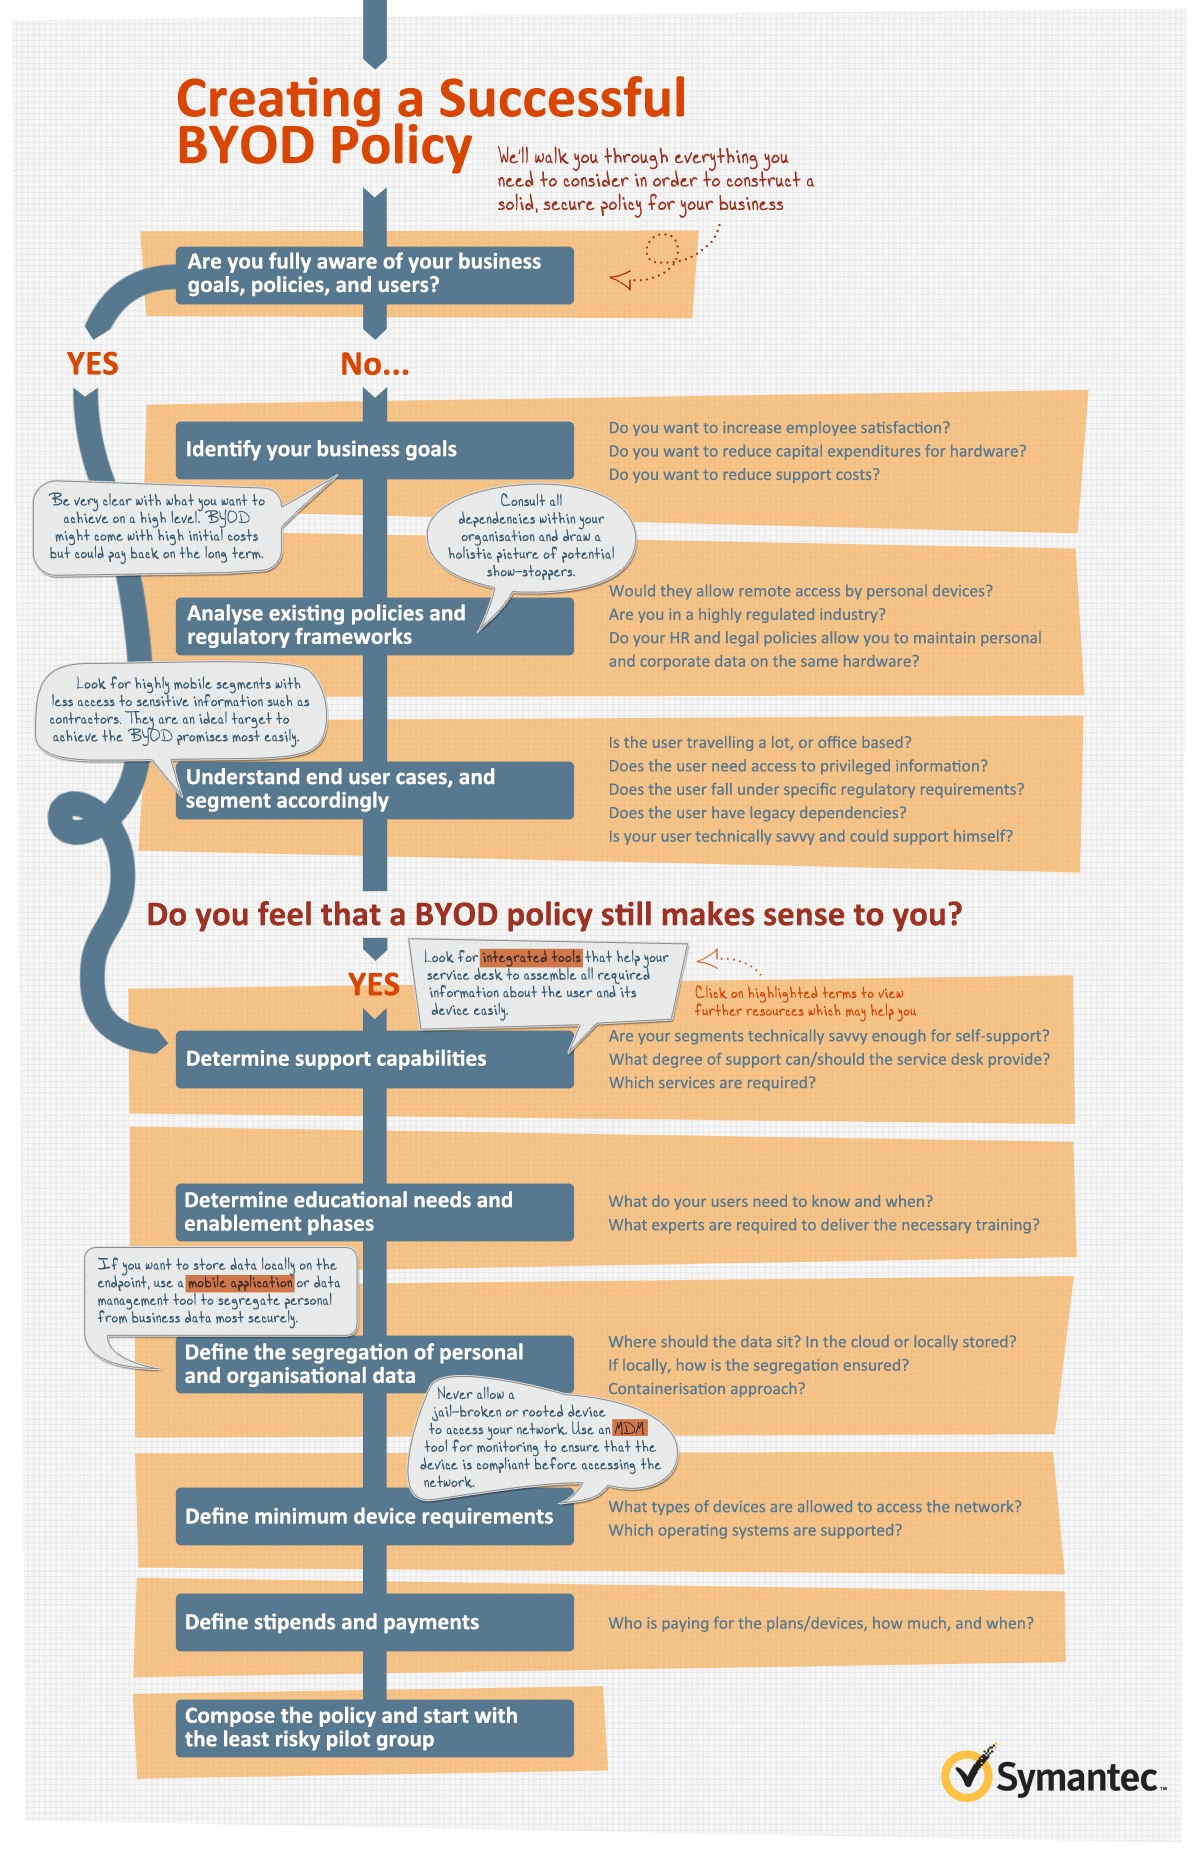 Creating a BYOD Policy